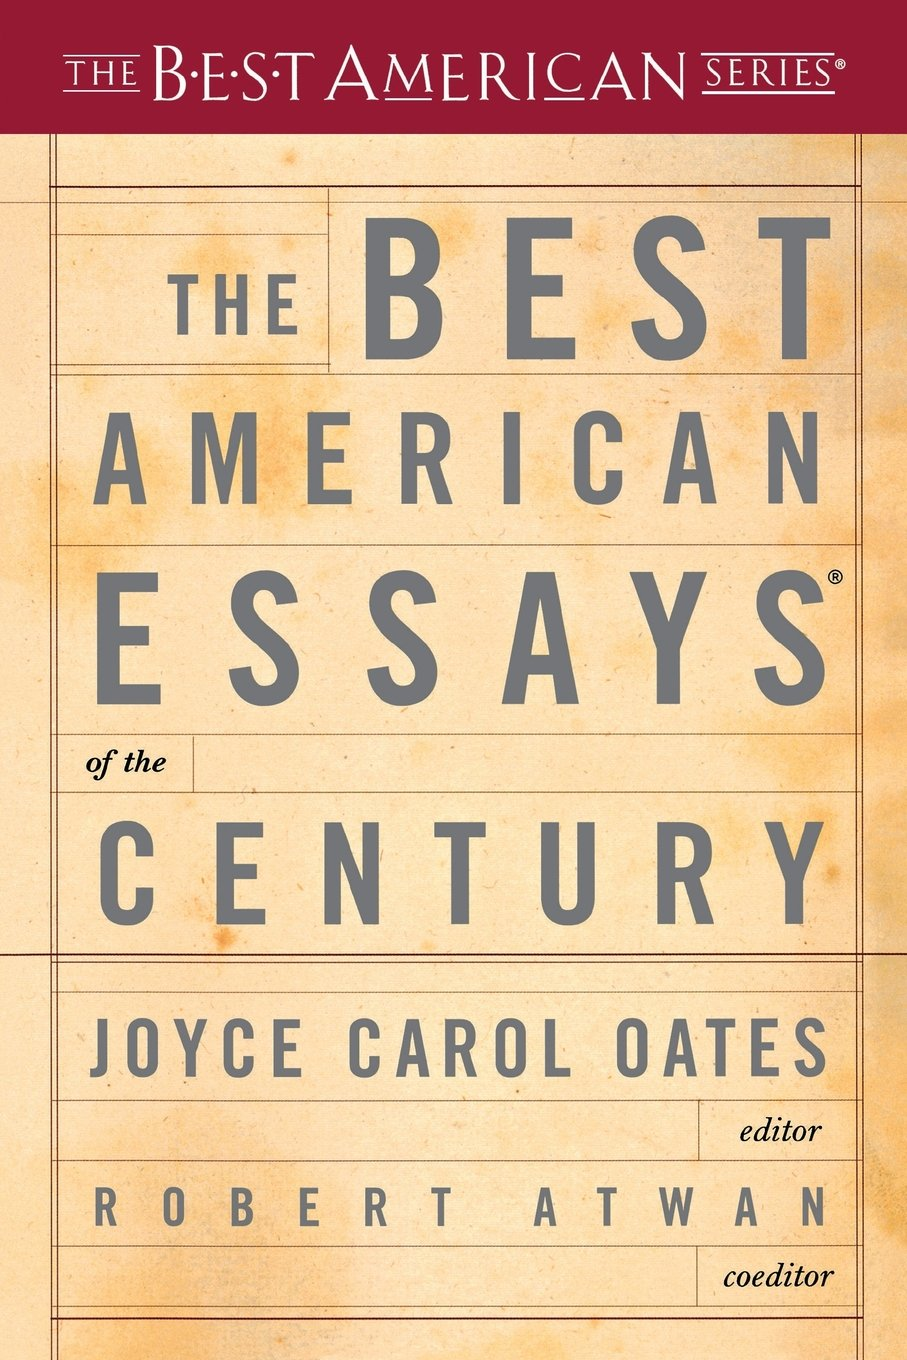 002 The Best American Essays Essay Example Wonderful Of Century Table Contents 2013 Pdf Download Full